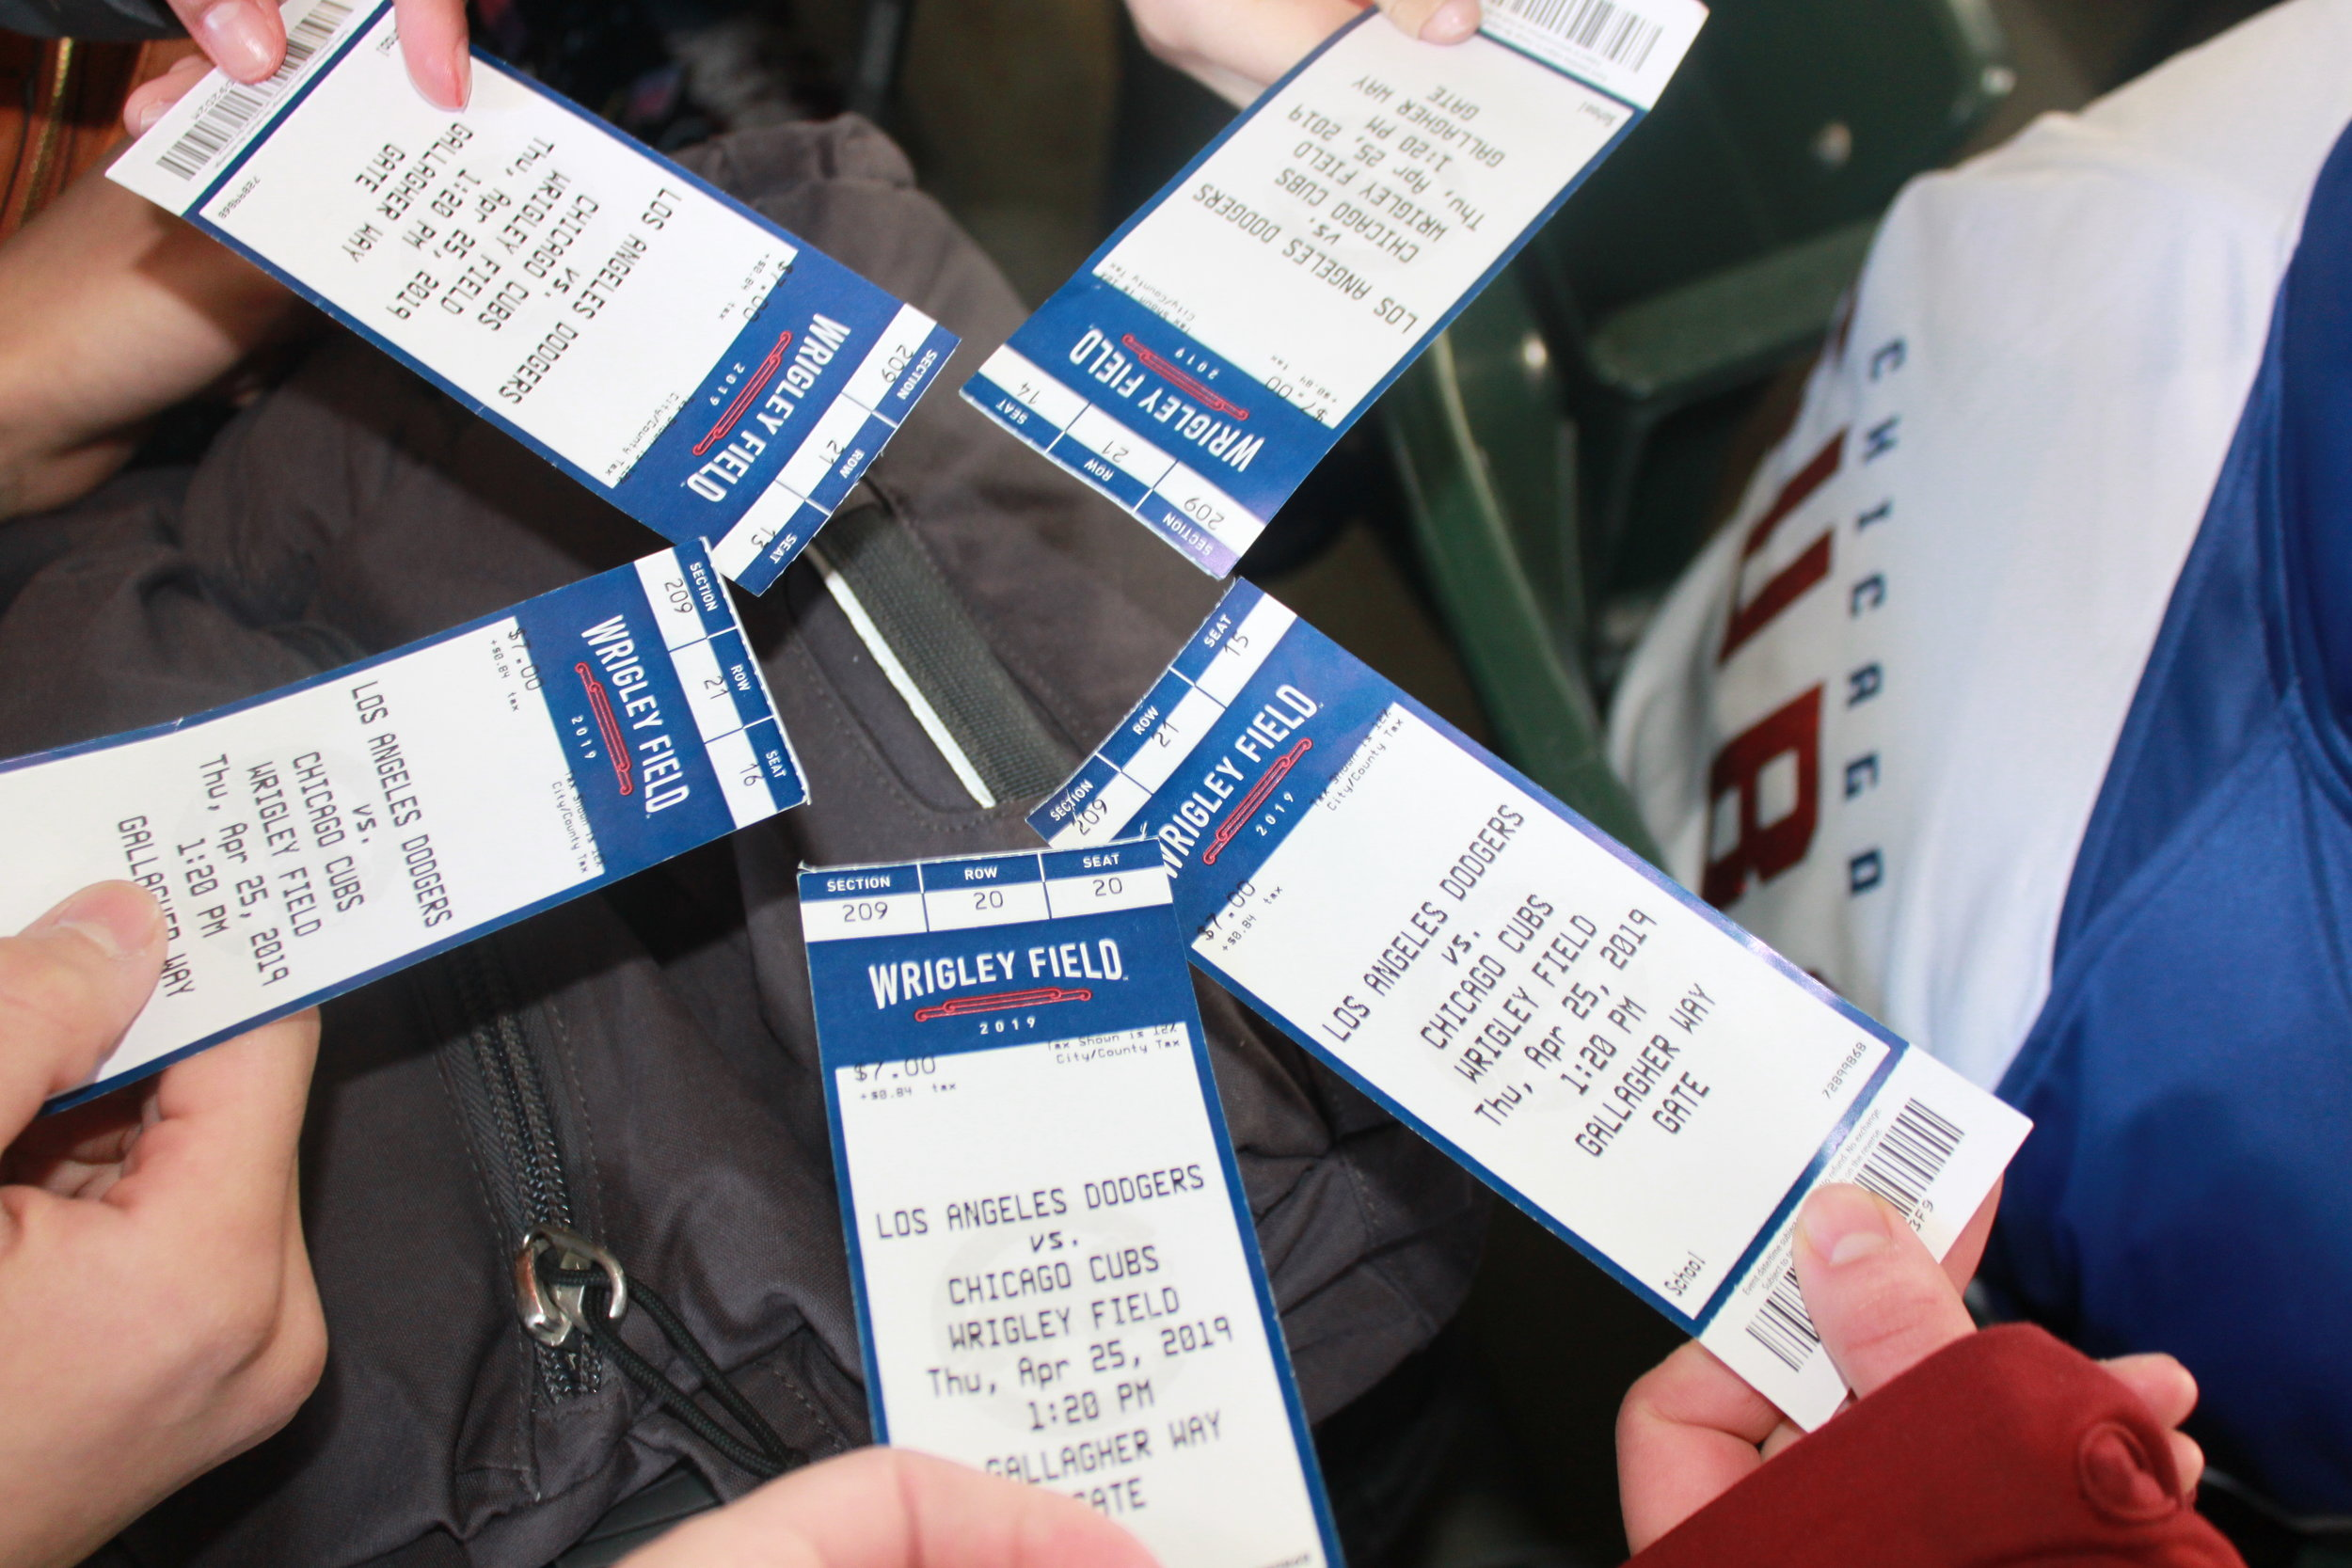 Our steeply discounted tickets displayed in all their glory